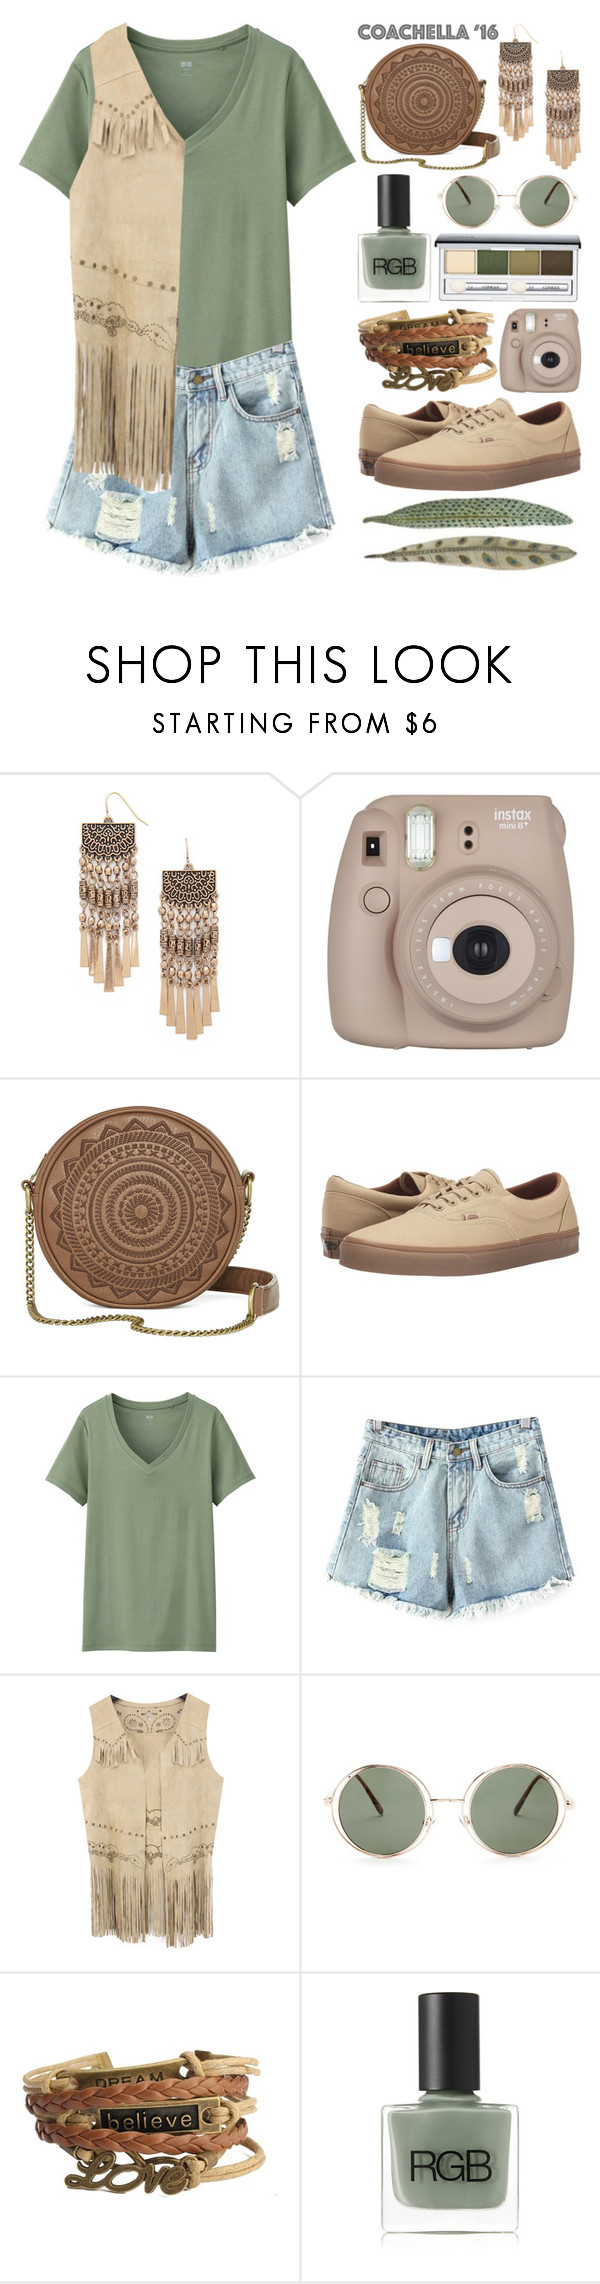 """""""Untitled 151"""" by meaganmuffins on Polyvore featuring Forever 21, T-shirt & Jeans, Vans, Uniqlo, Chicnova Fashion, RGB, Clinique, fringe, coachella and festivalstyle"""